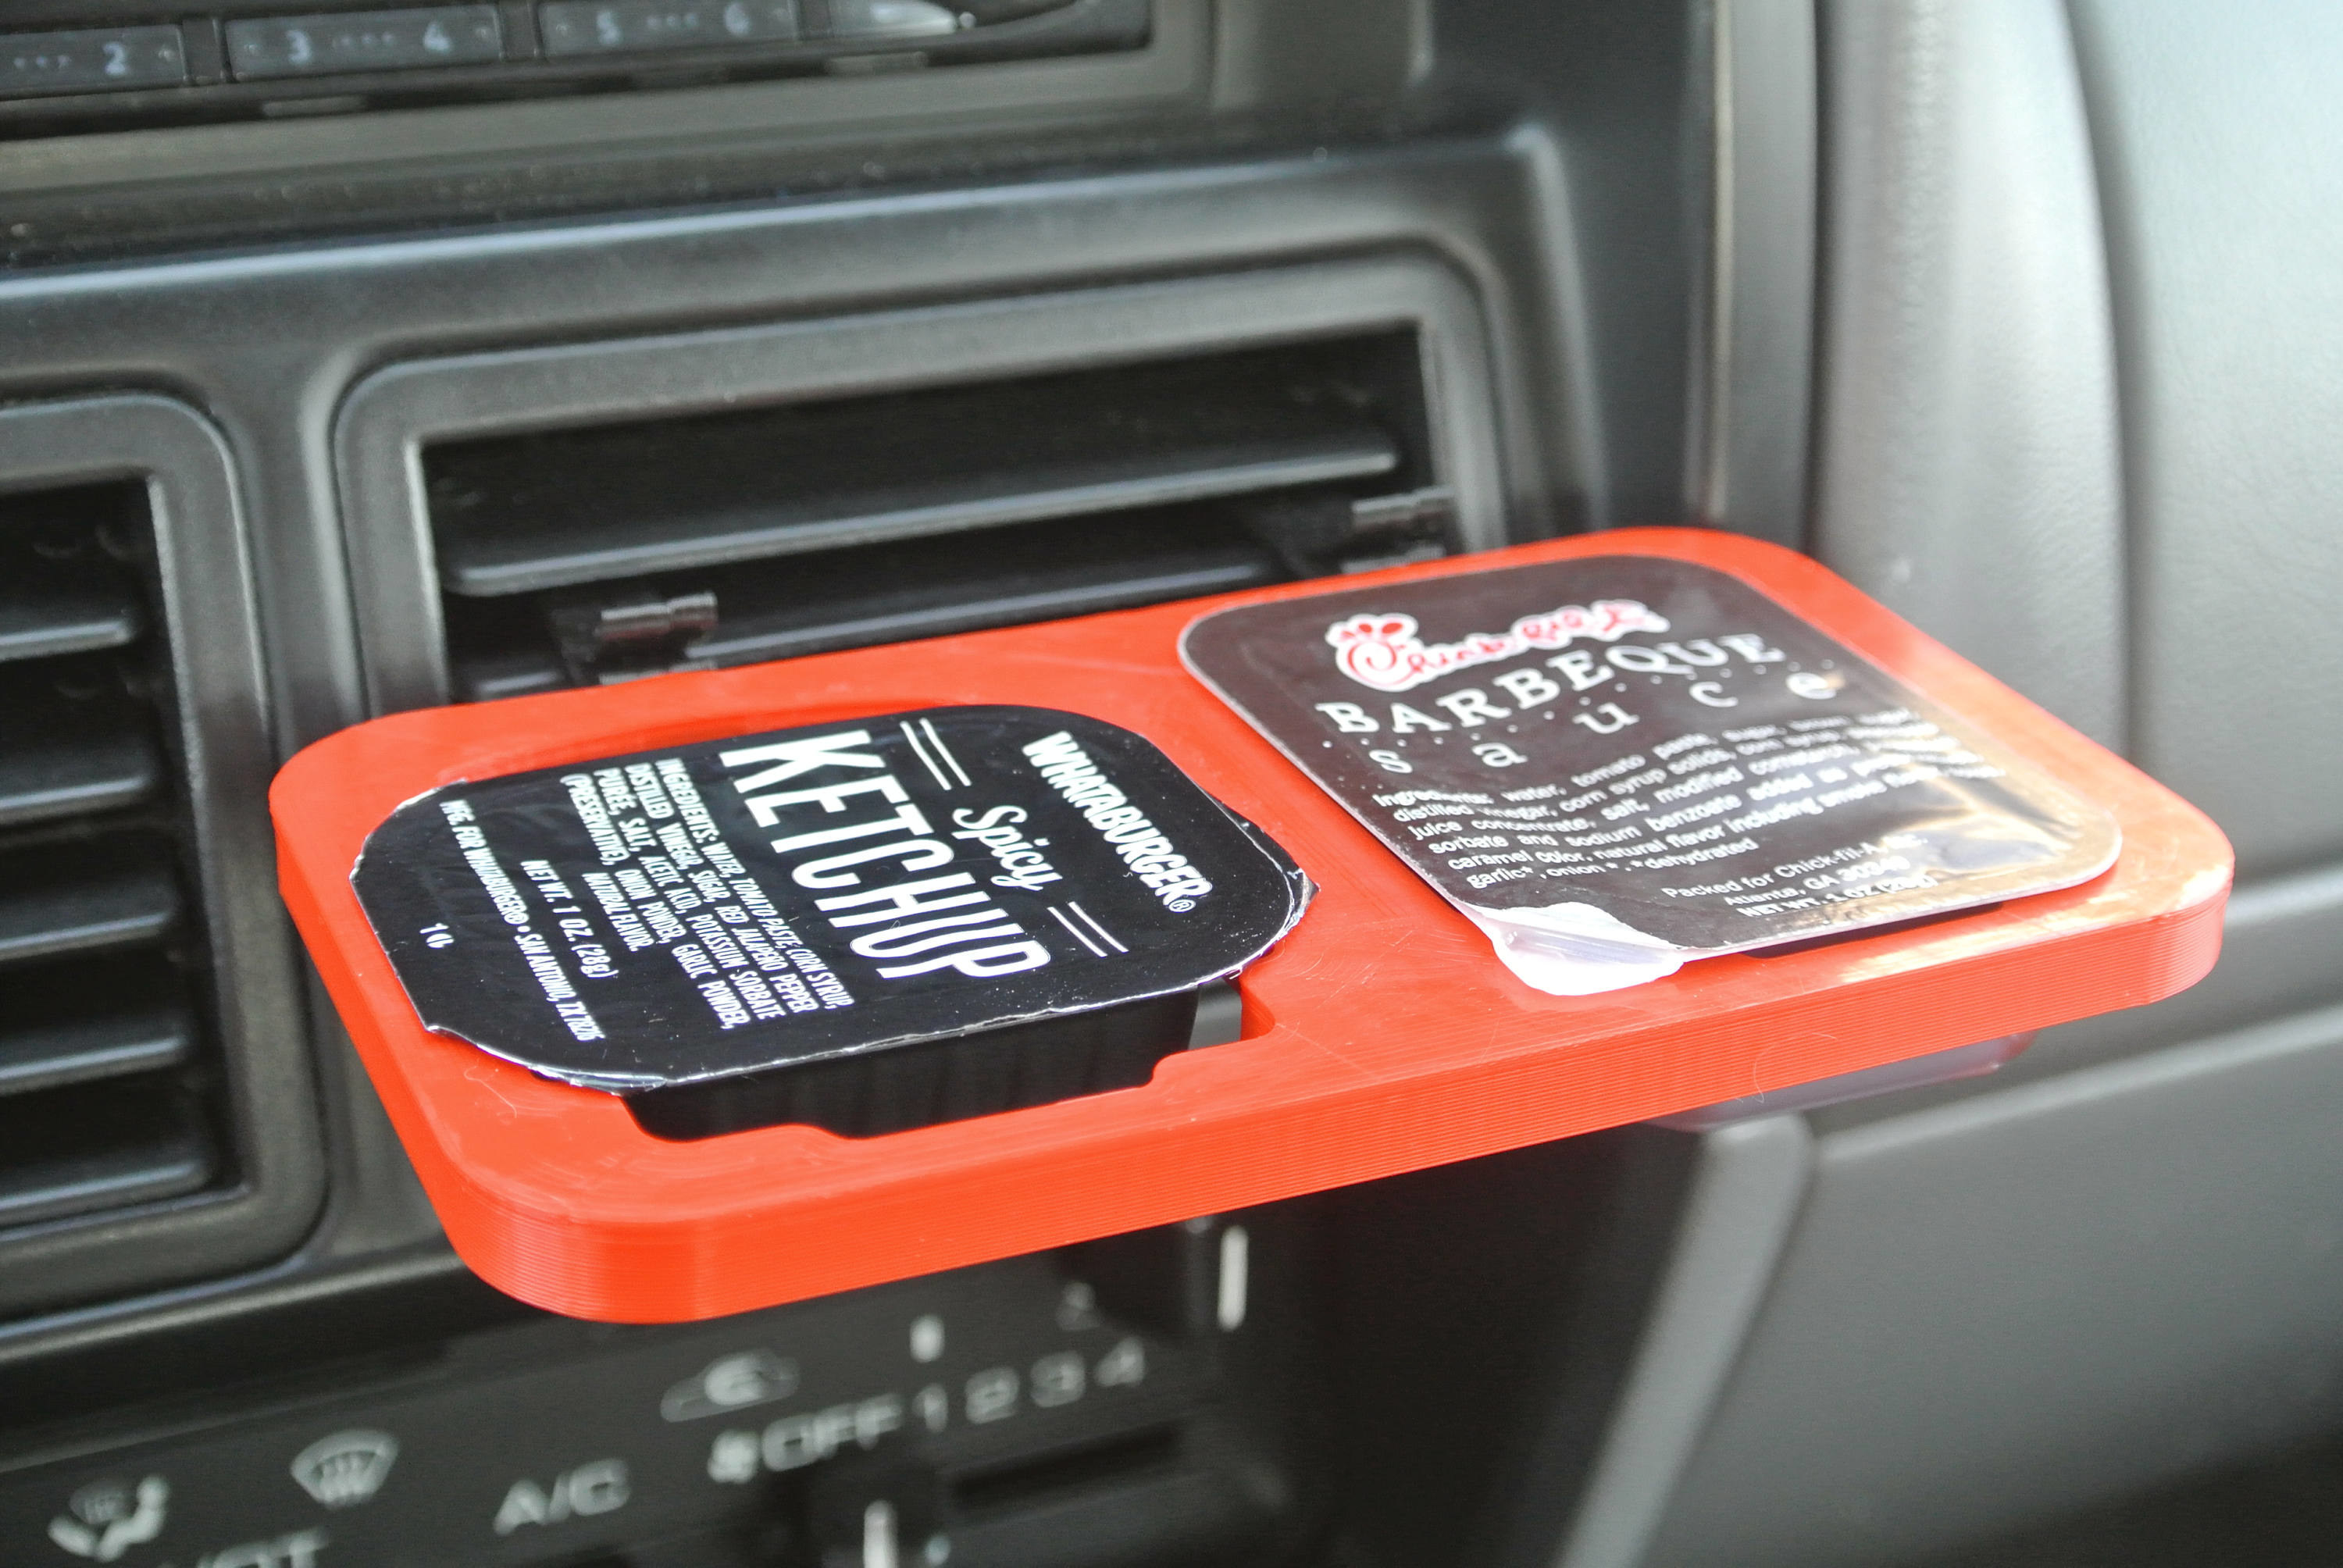 A red flat container with two holes for dipping sauce is clipped to a car vent